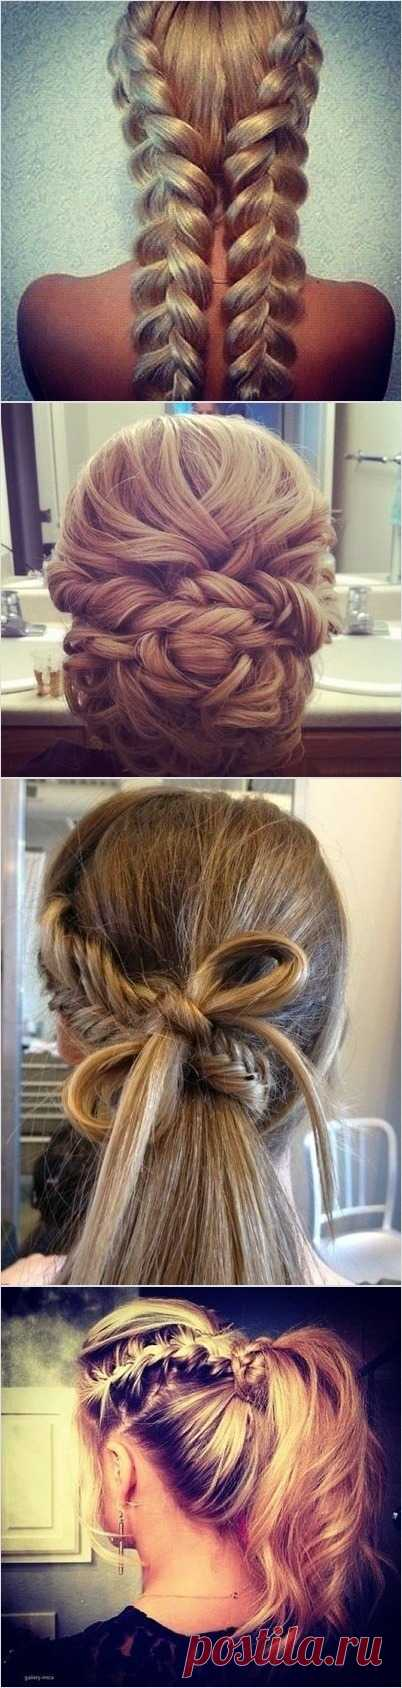 Ideas for a hairdress